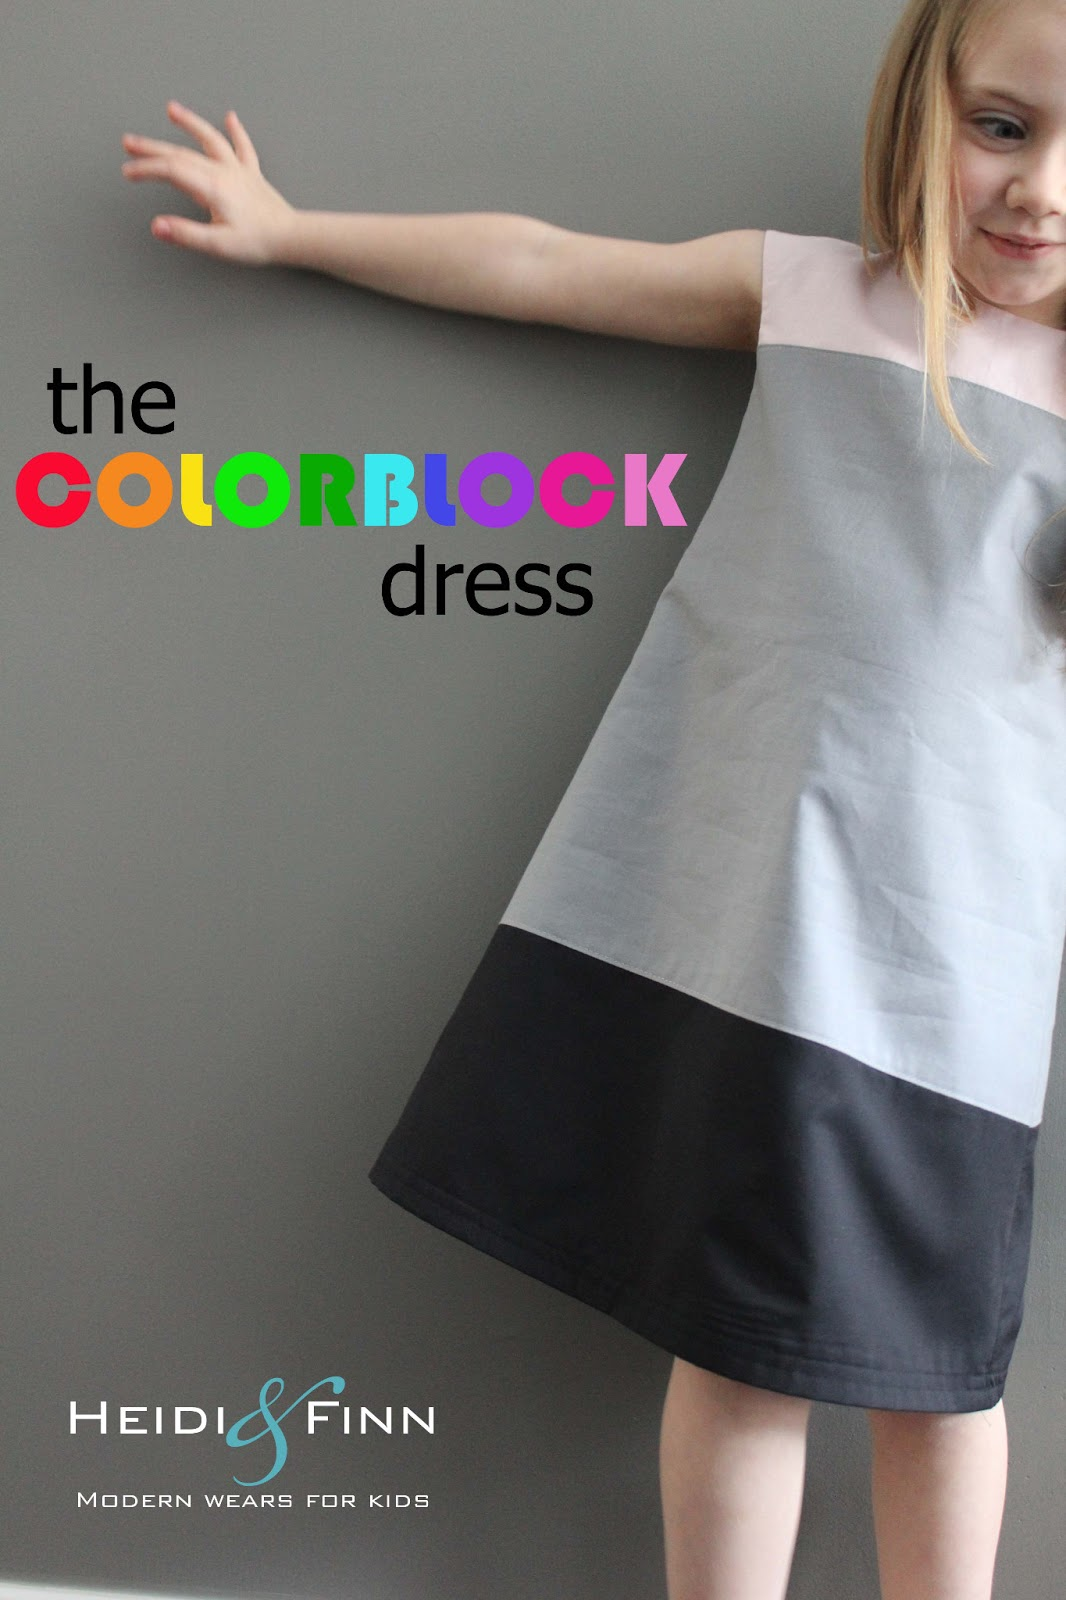 https://www.etsy.com/listing/175729343/colorblock-dress-pattern-and-tutorial?